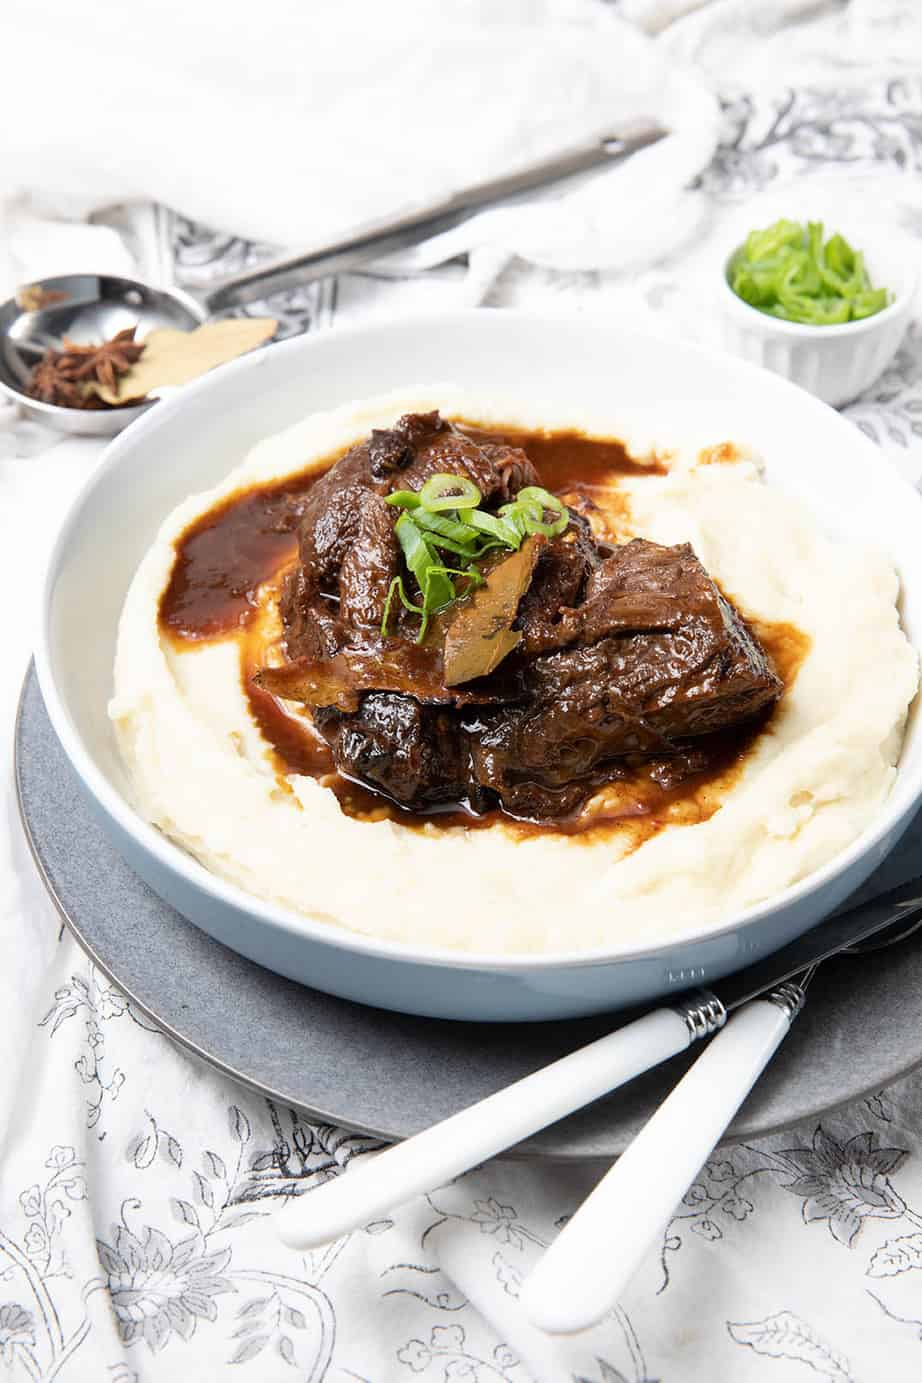 Large bowl of mashed potato with a serving of slow cooked beef cheeks over the top